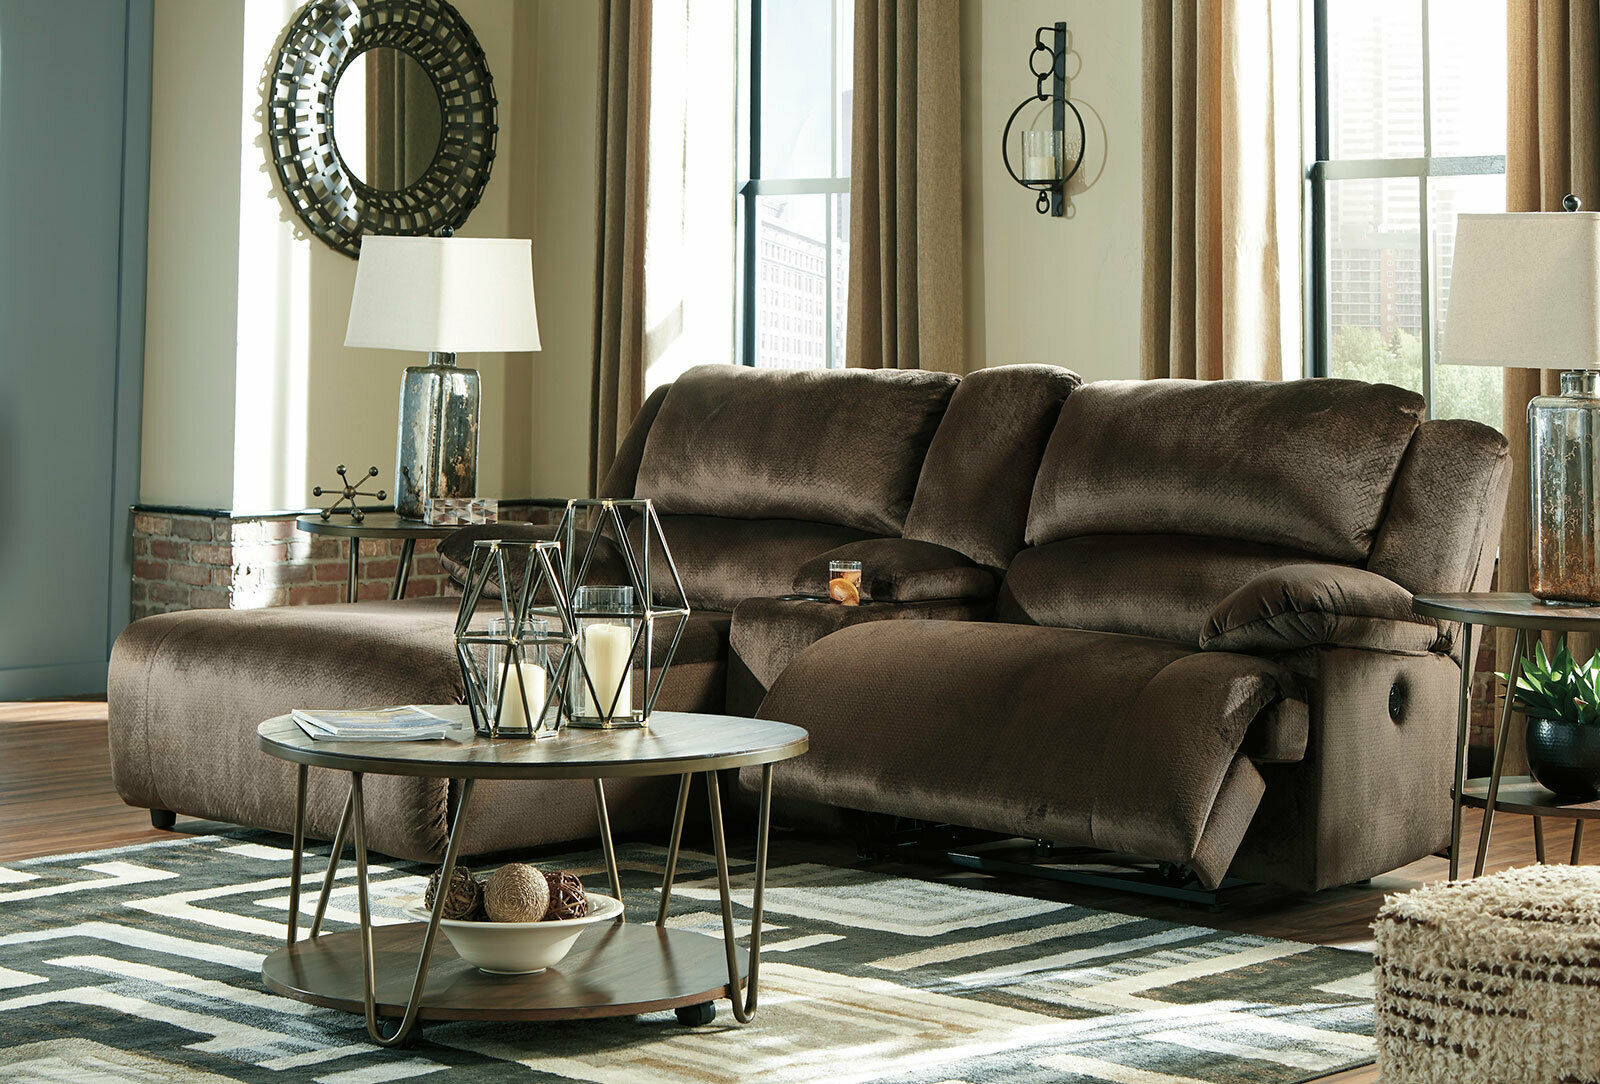 Motion living room 3 piece sectional brown fabric - Fabric reclining living room sets ...